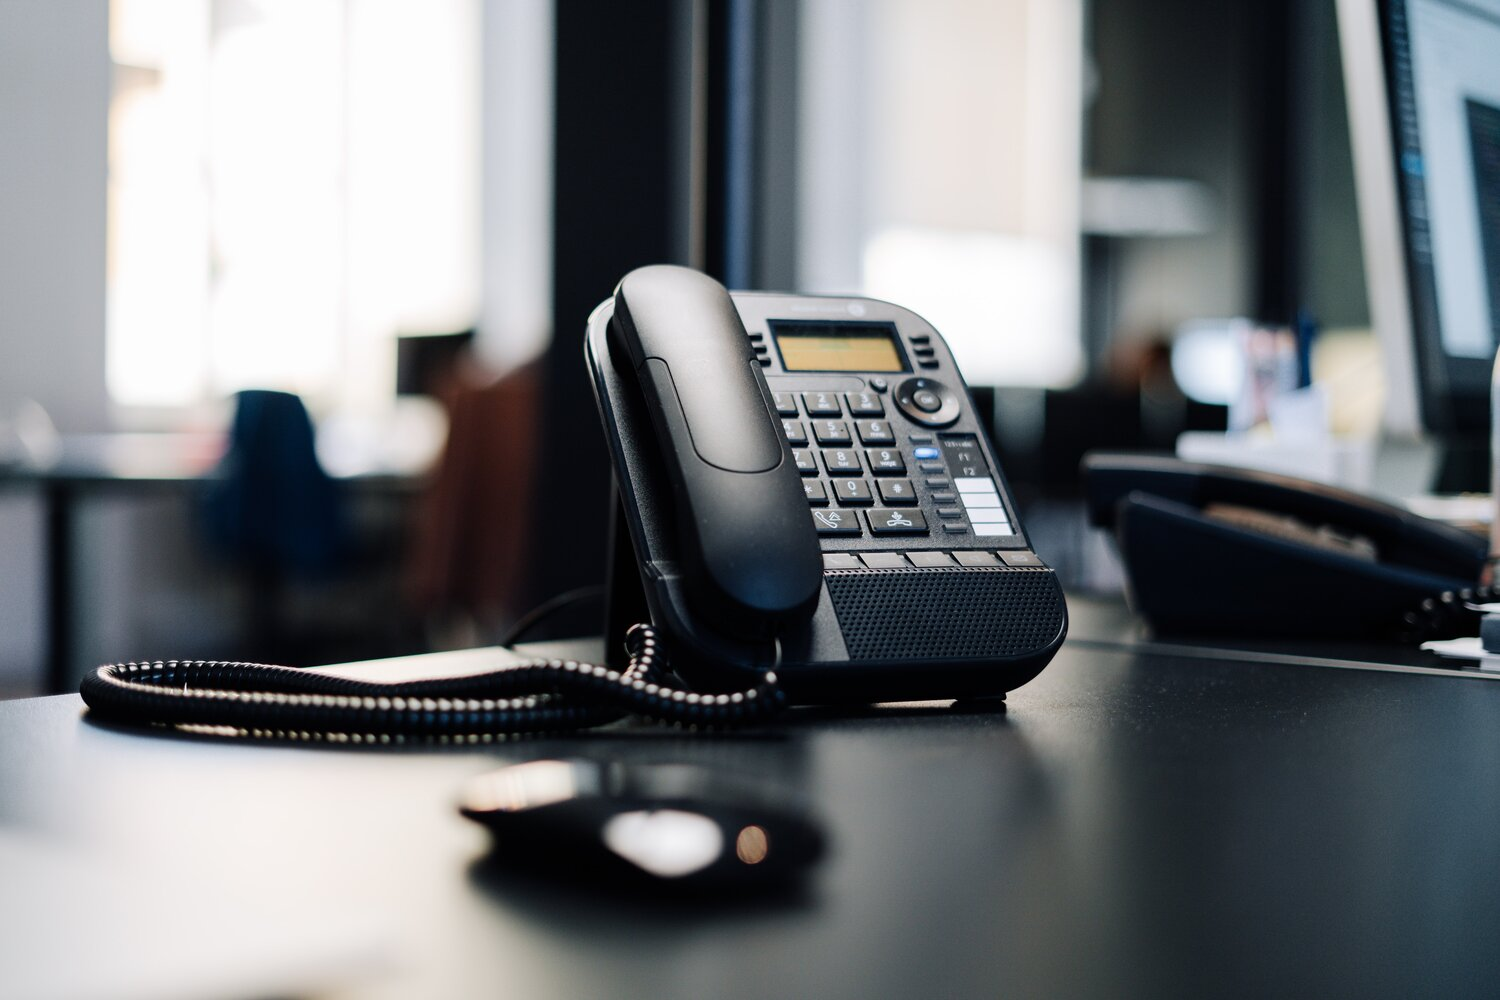 office phone and intercom to deal with business complaints